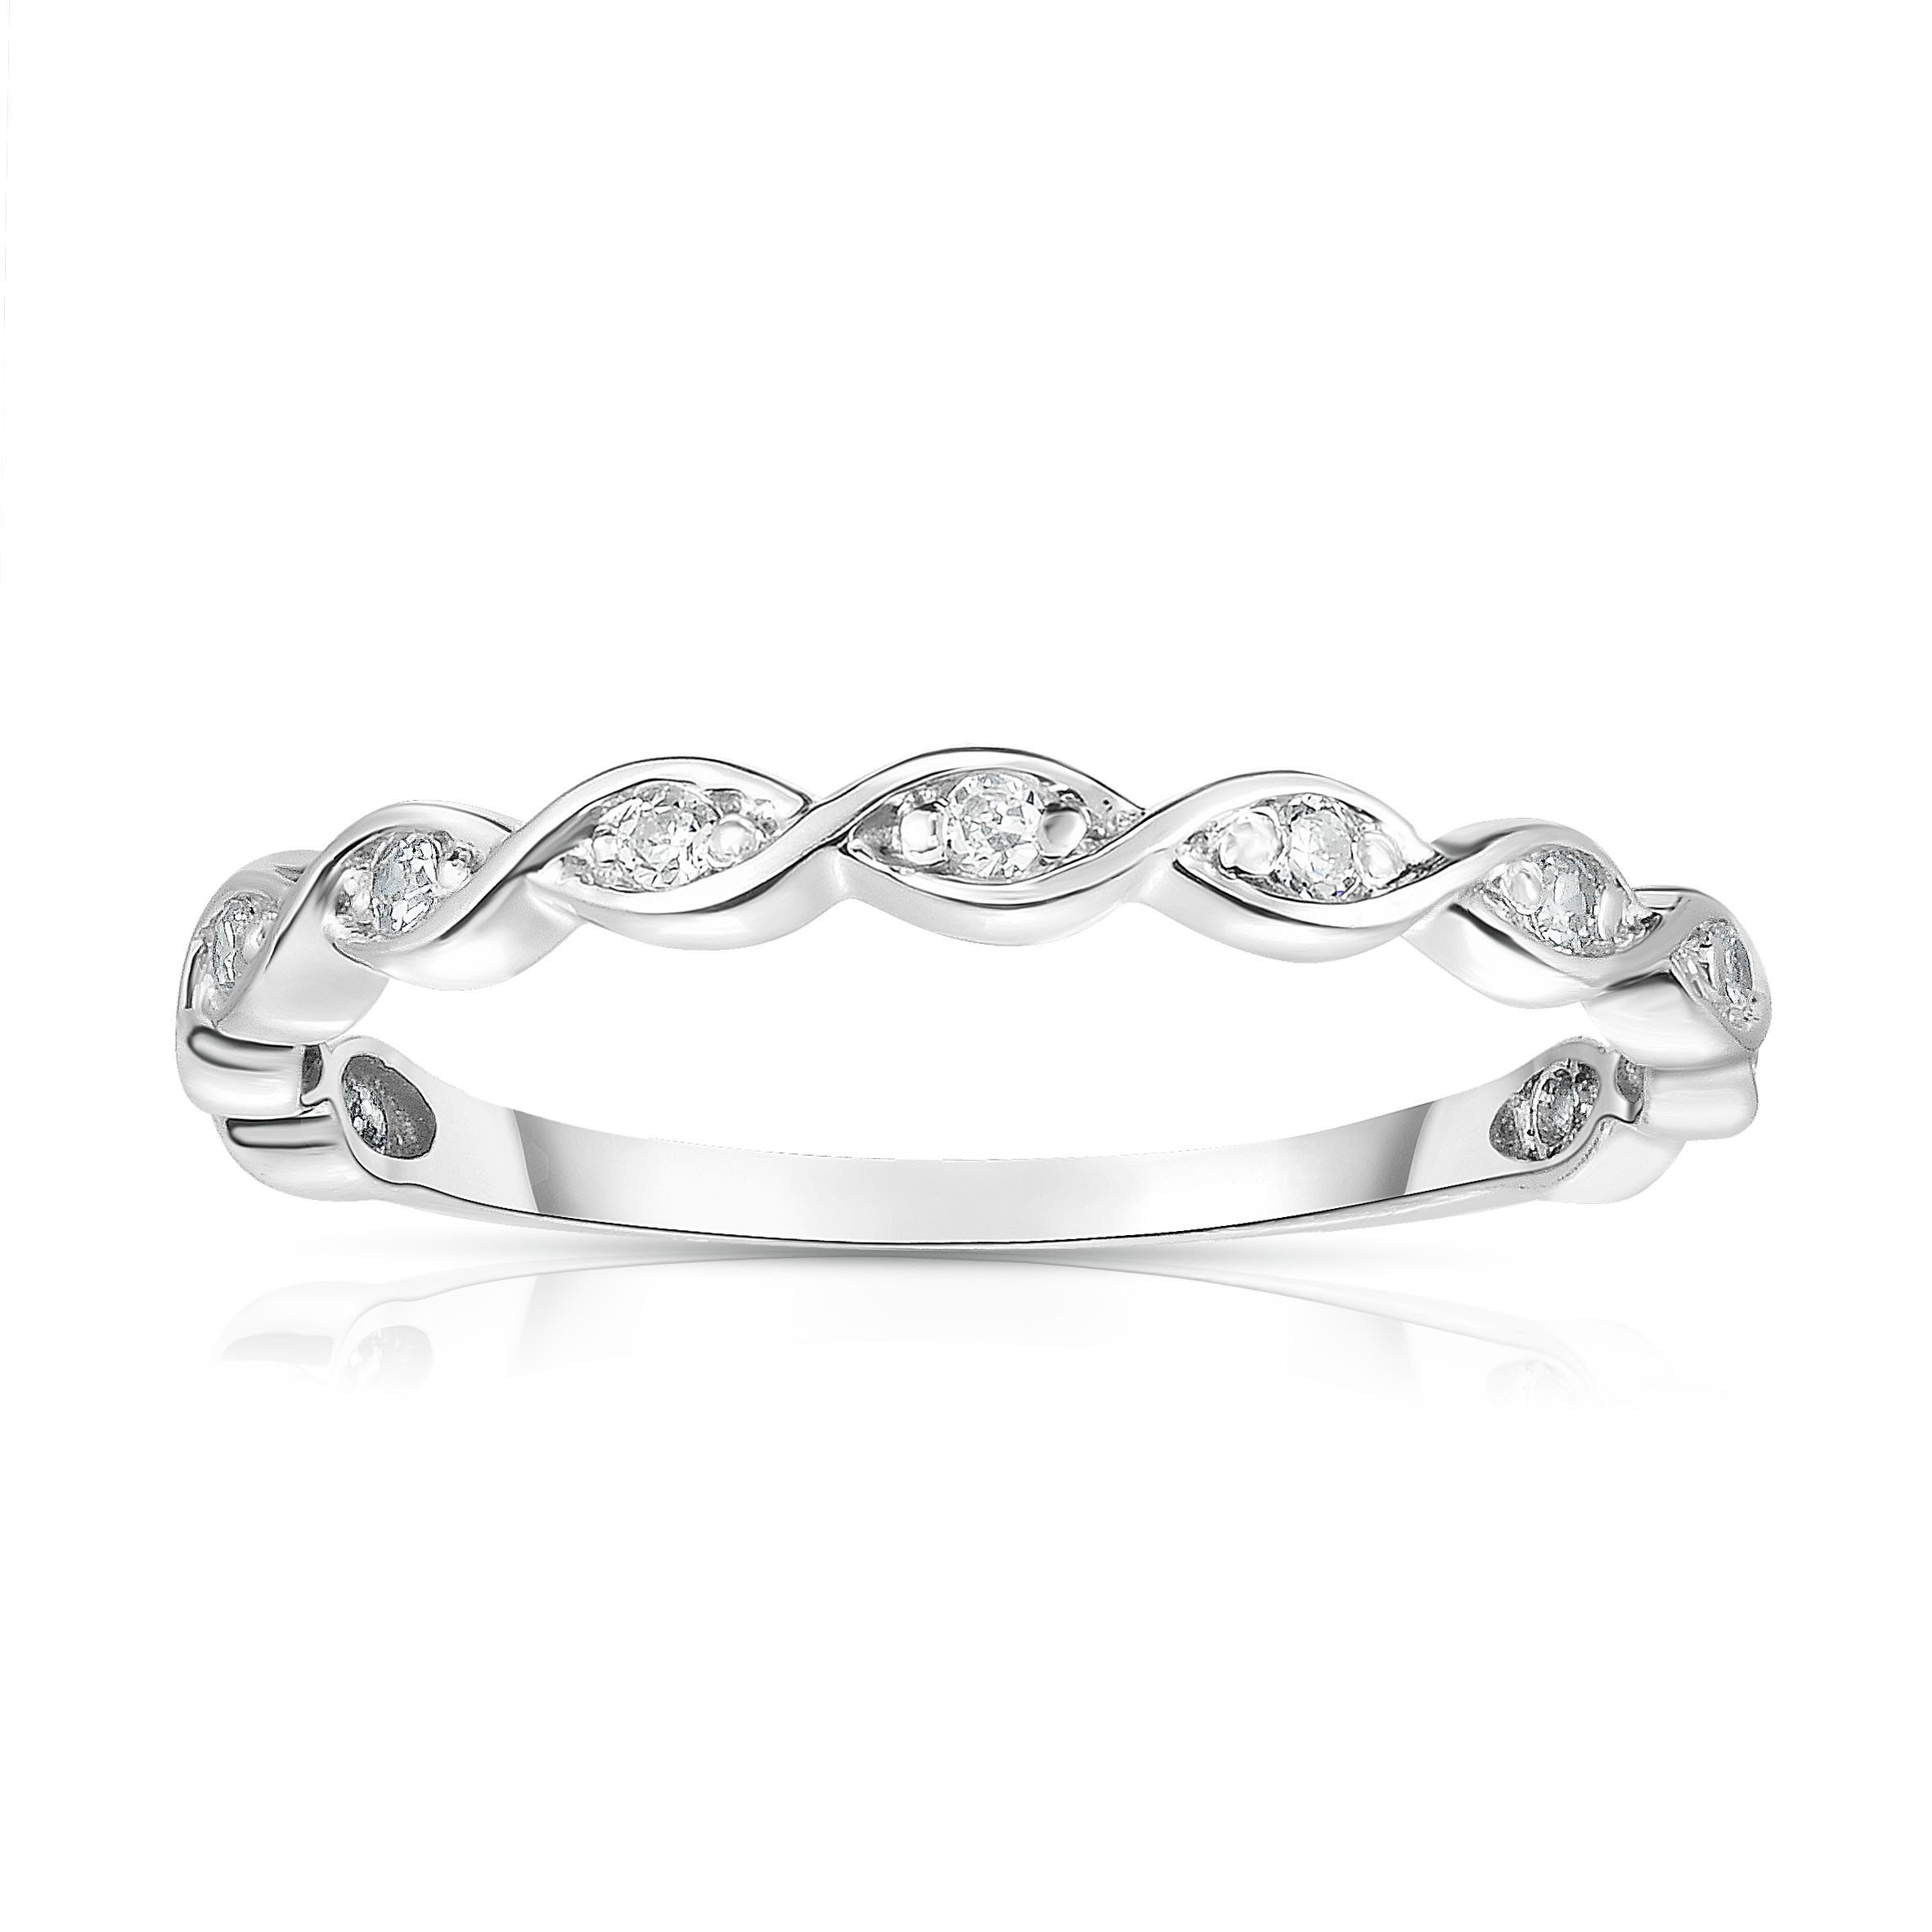 Noray Designs 14K White Gold Diamond (0.07 Ct, G-H Color, SI2-I1 Clarity) Braided Stackable Ring